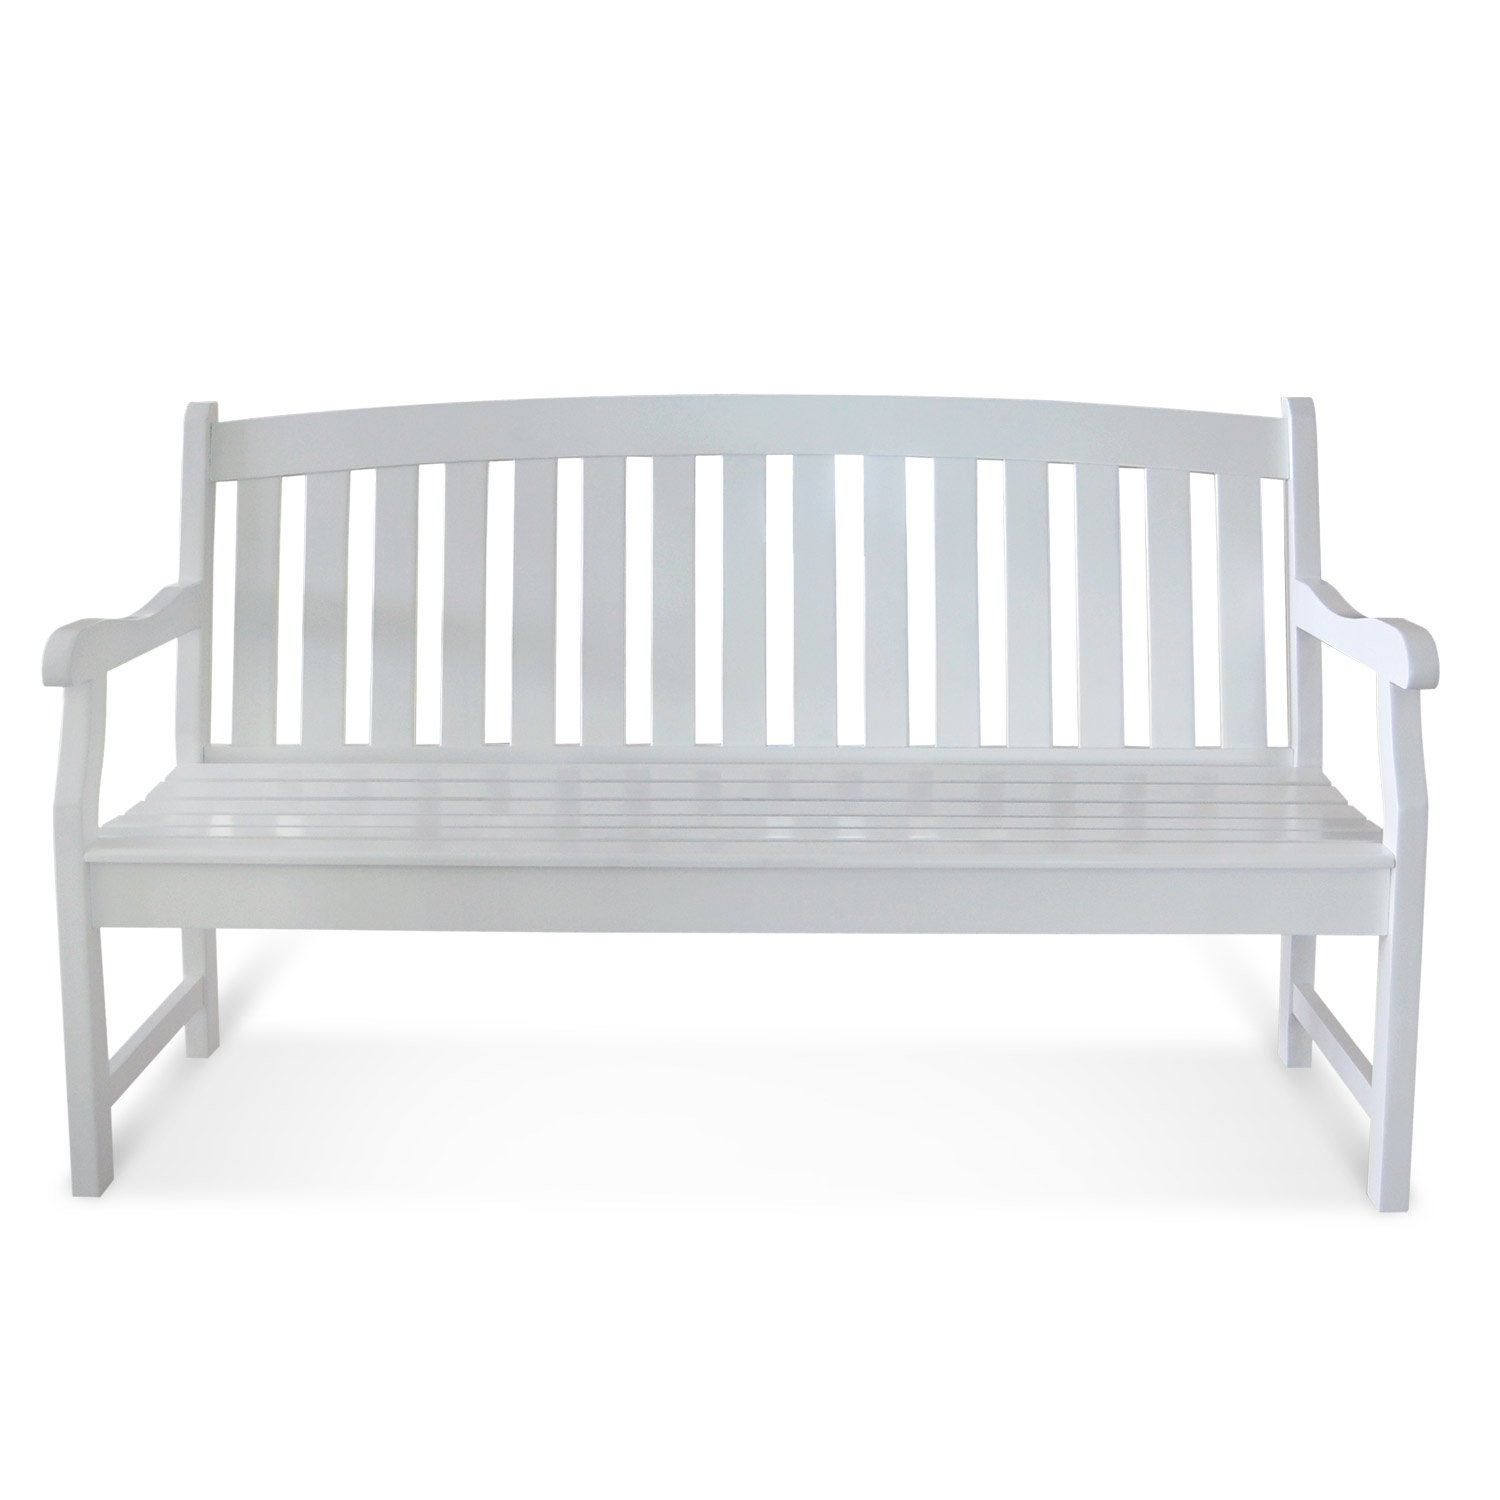 garden for set table bench white antique chairs durable furniture with and chair cheap slats about ends outdoor cast bistro mybktouch replacement iron ideas